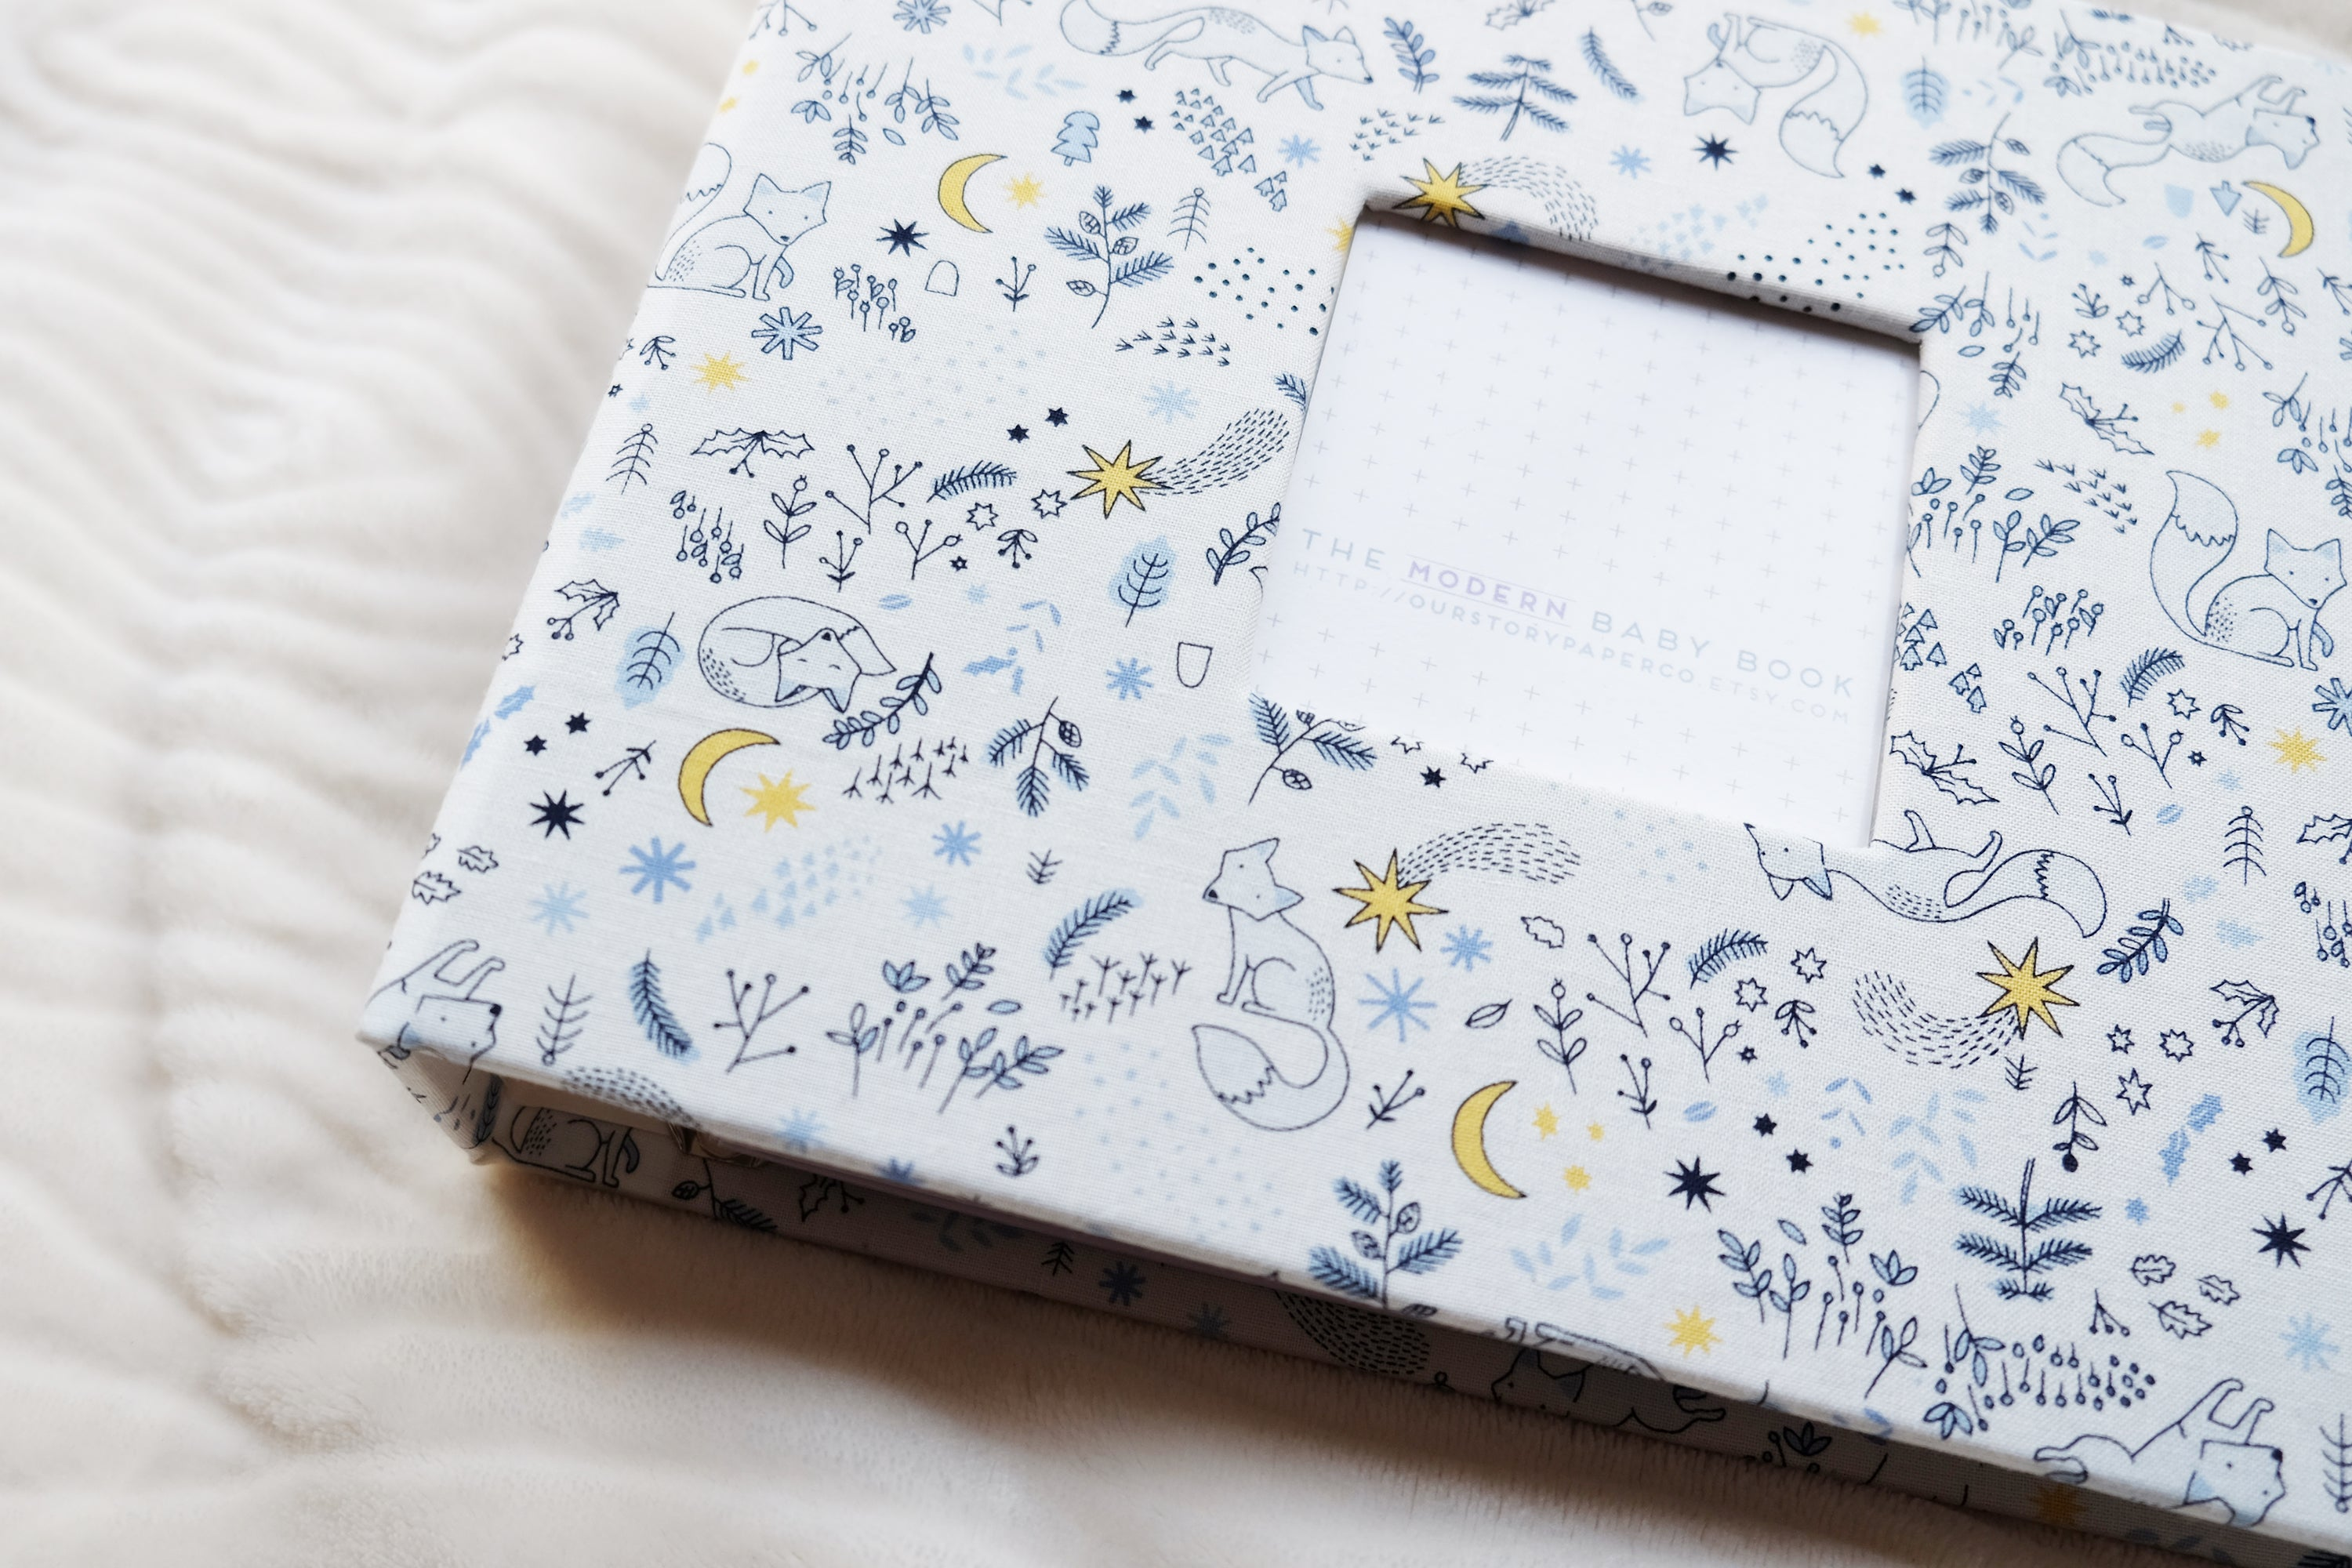 Woodland Dreams Keepsake Album by Our Story Paper Co.